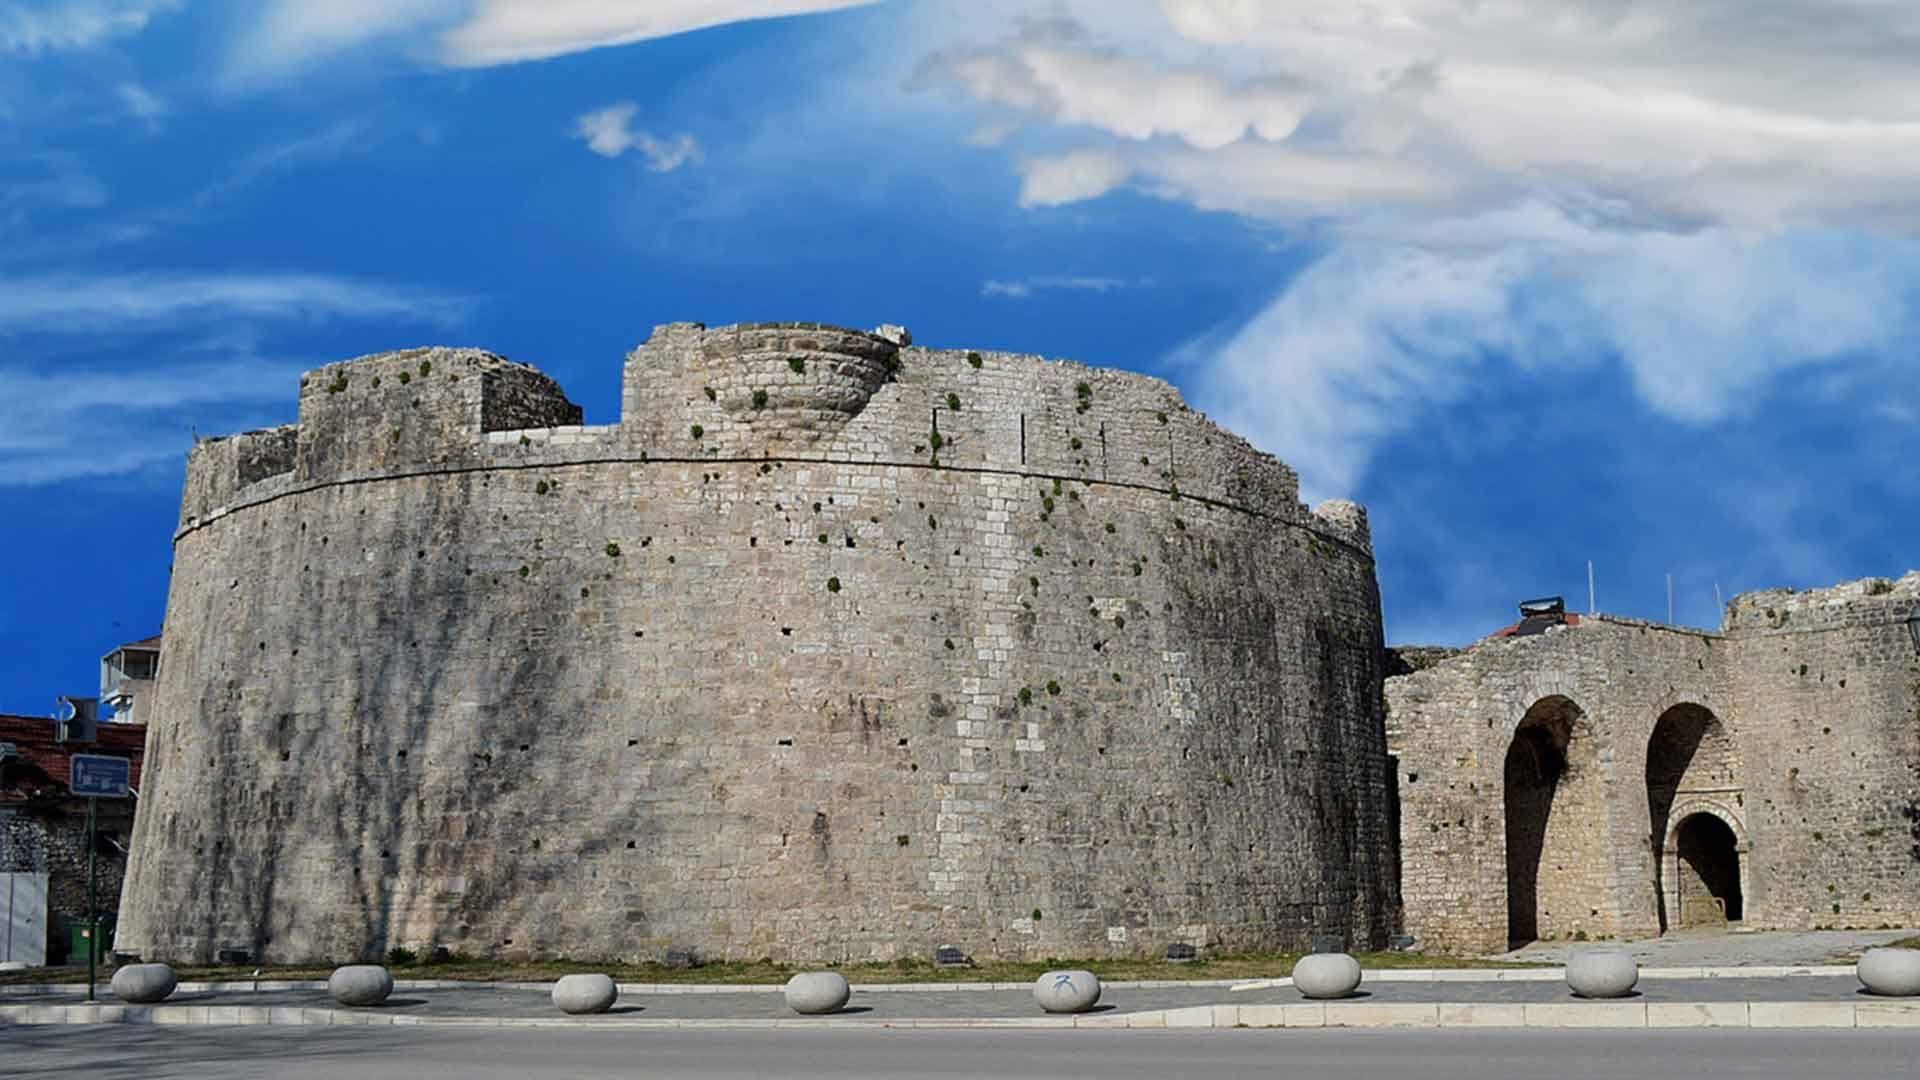 The imposing Castle of Ioannina